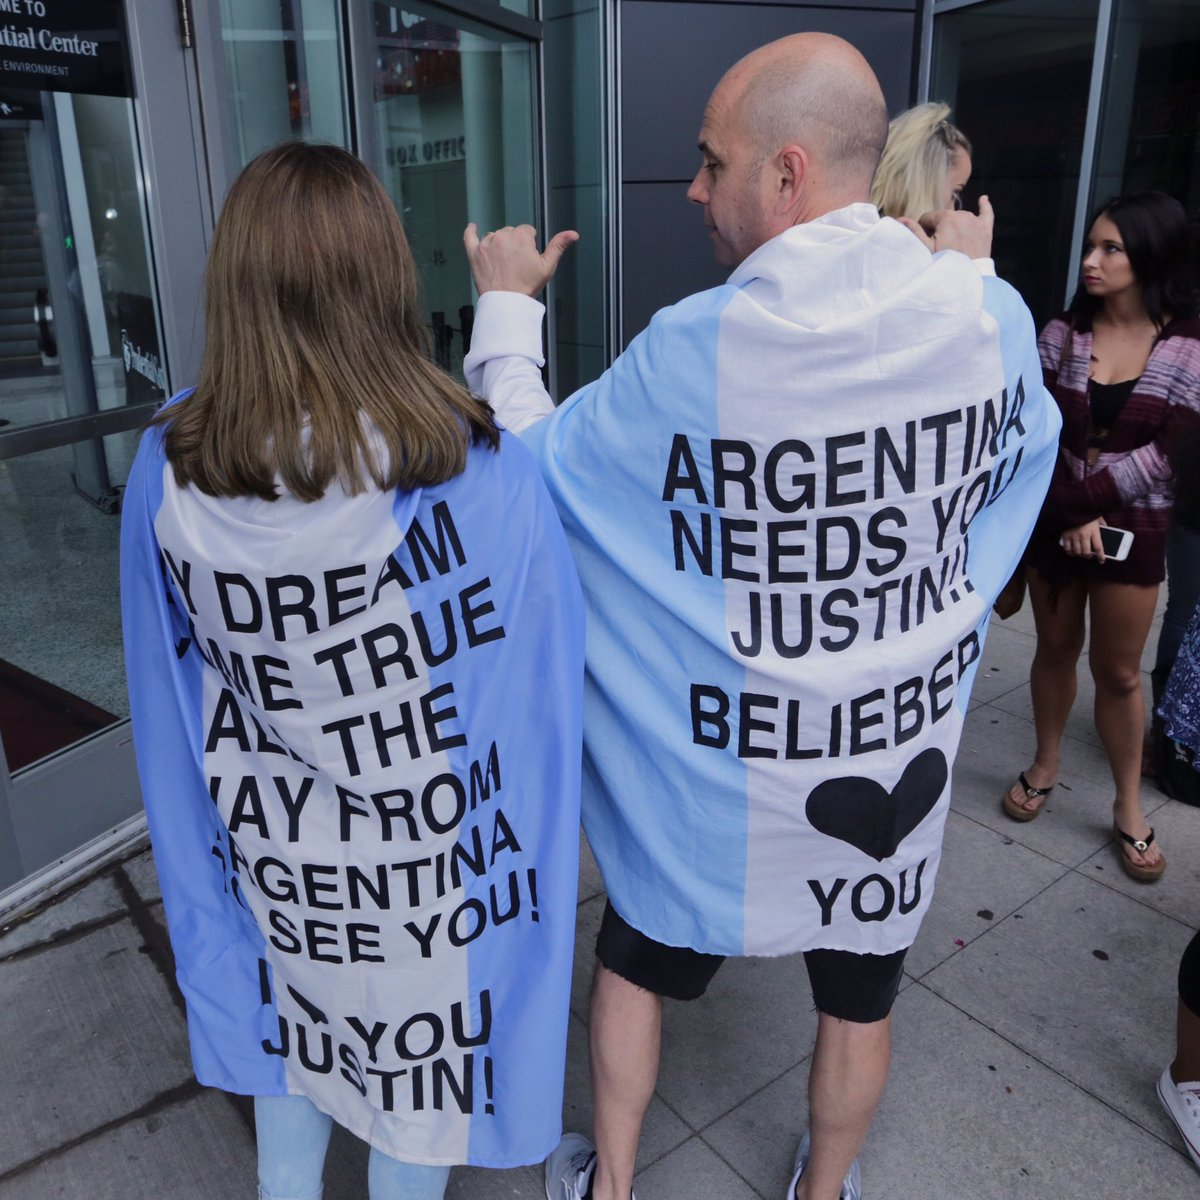 These #Beliebers from Argentina came to Jersey to see @justinbieber! #purposeworldtour #purposetournewark https://t.co/6EuvMpJEyb